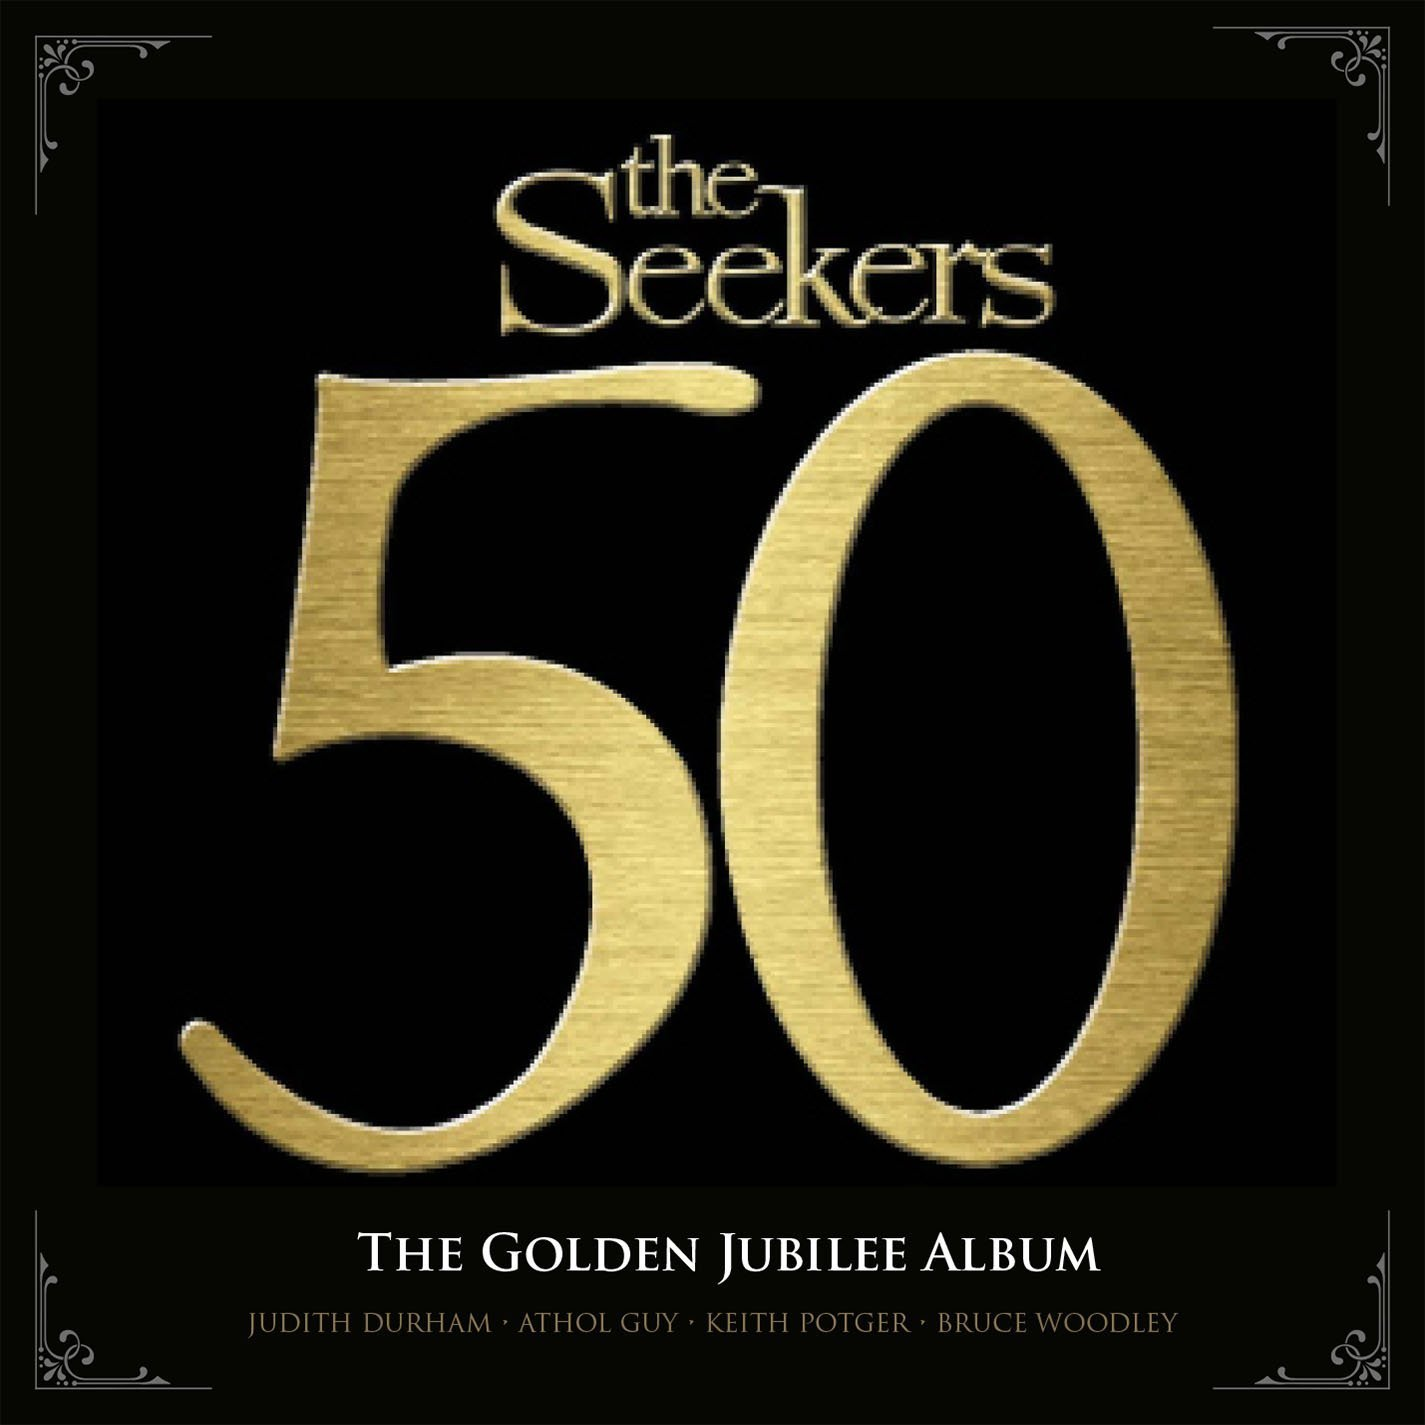 50 (The Golden Jubilee Album) by The Seekers image